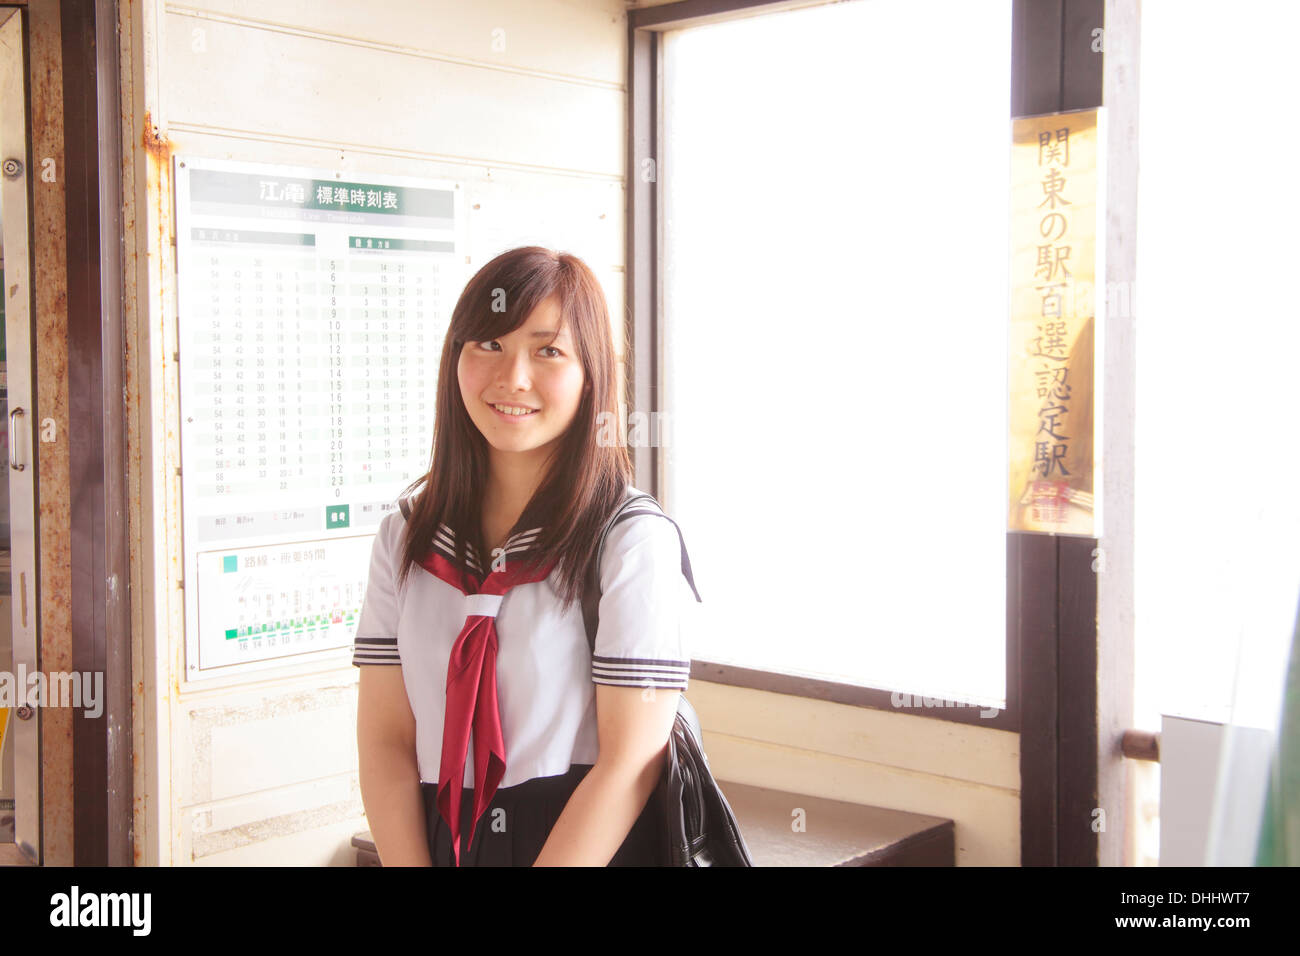 Woman wearing school uniform at train station - Stock Image